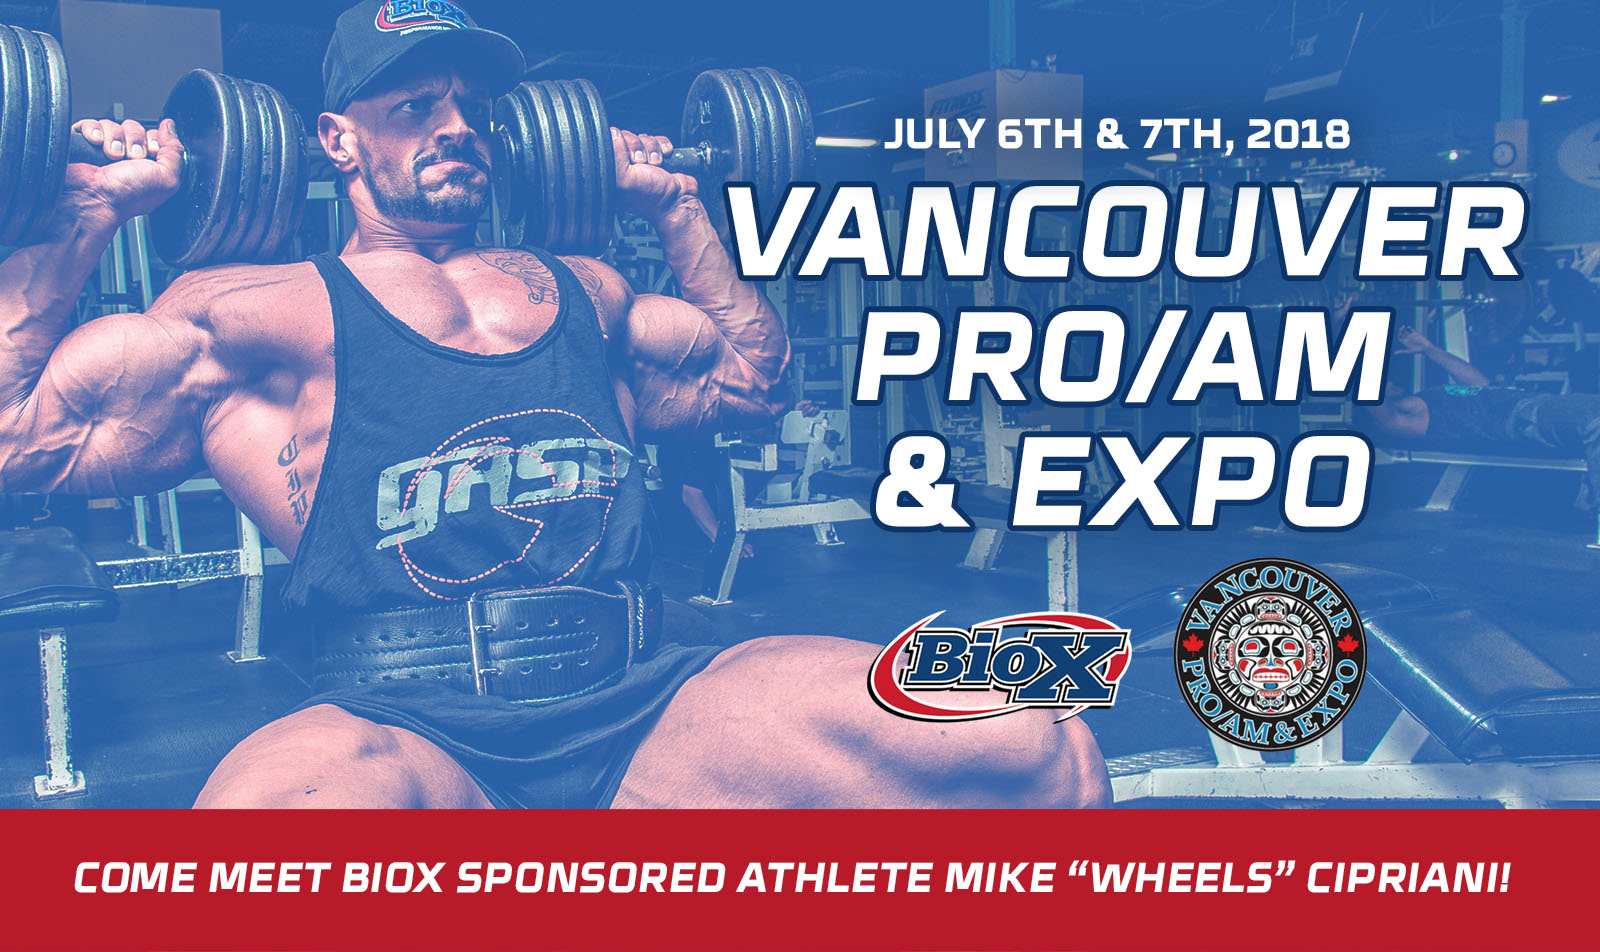 BioX at Vancouver Pro/Am & Expo This Weekend